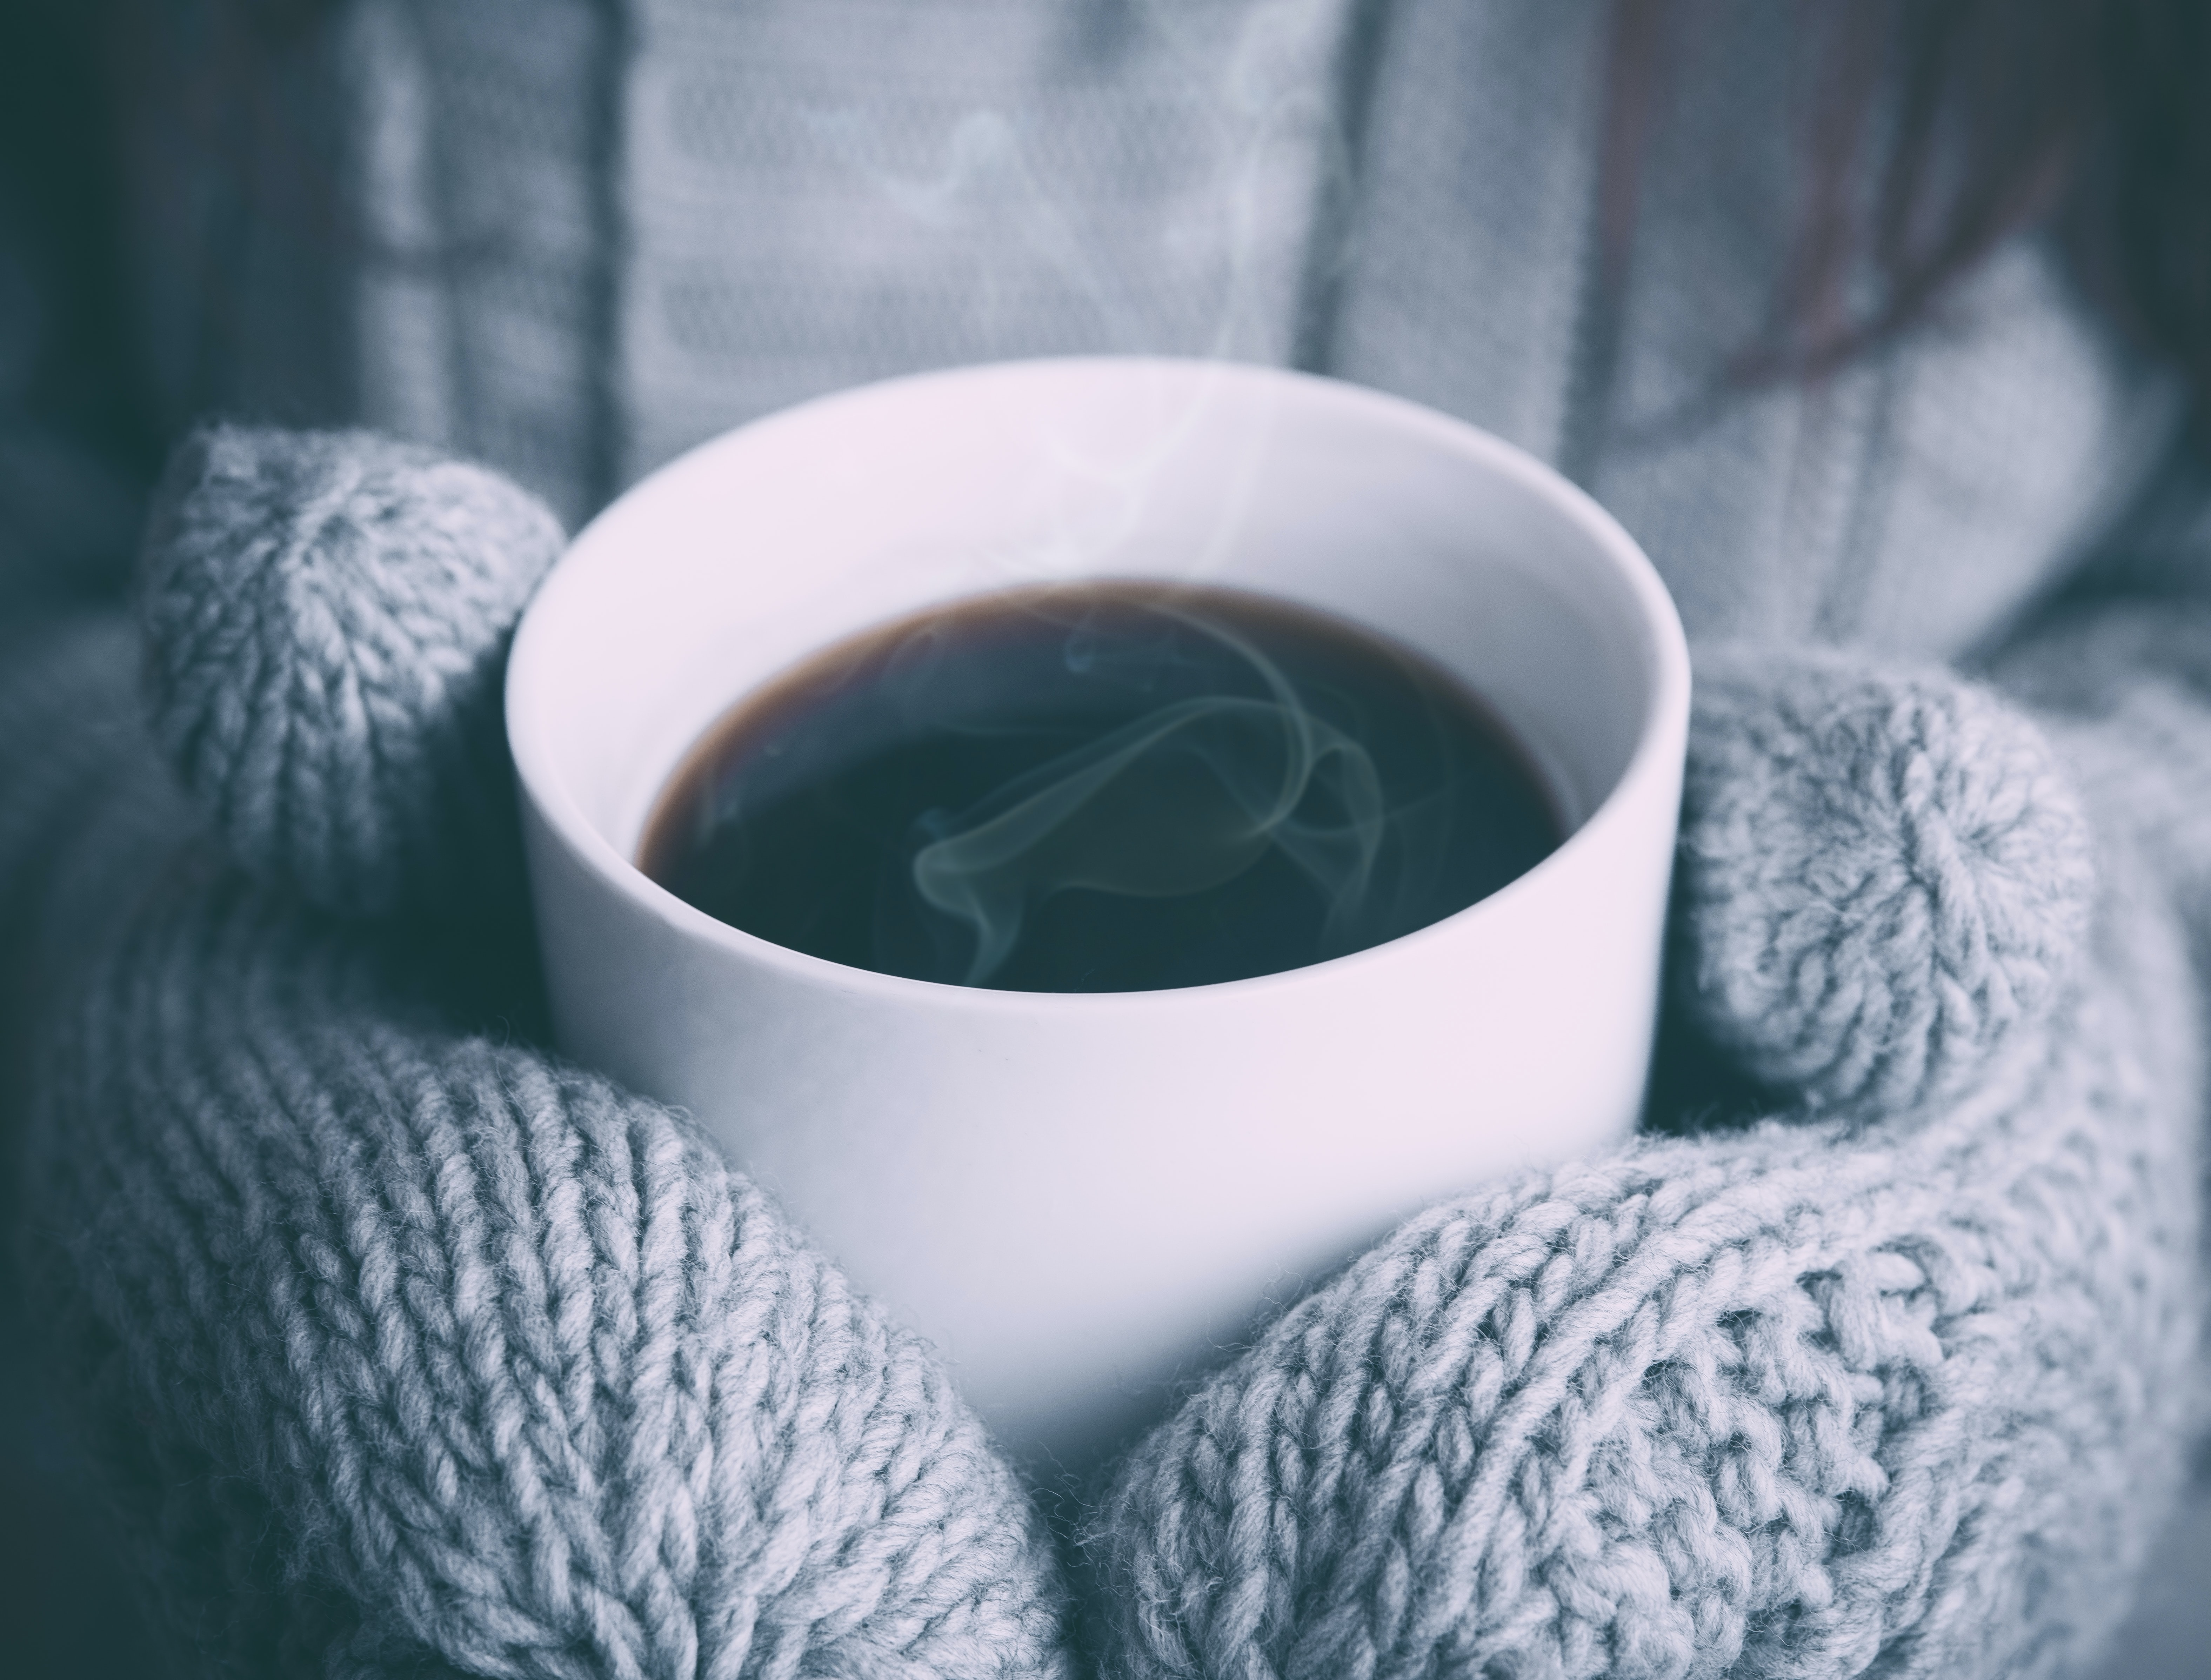 A person in mittens holding a cup of hot coffee